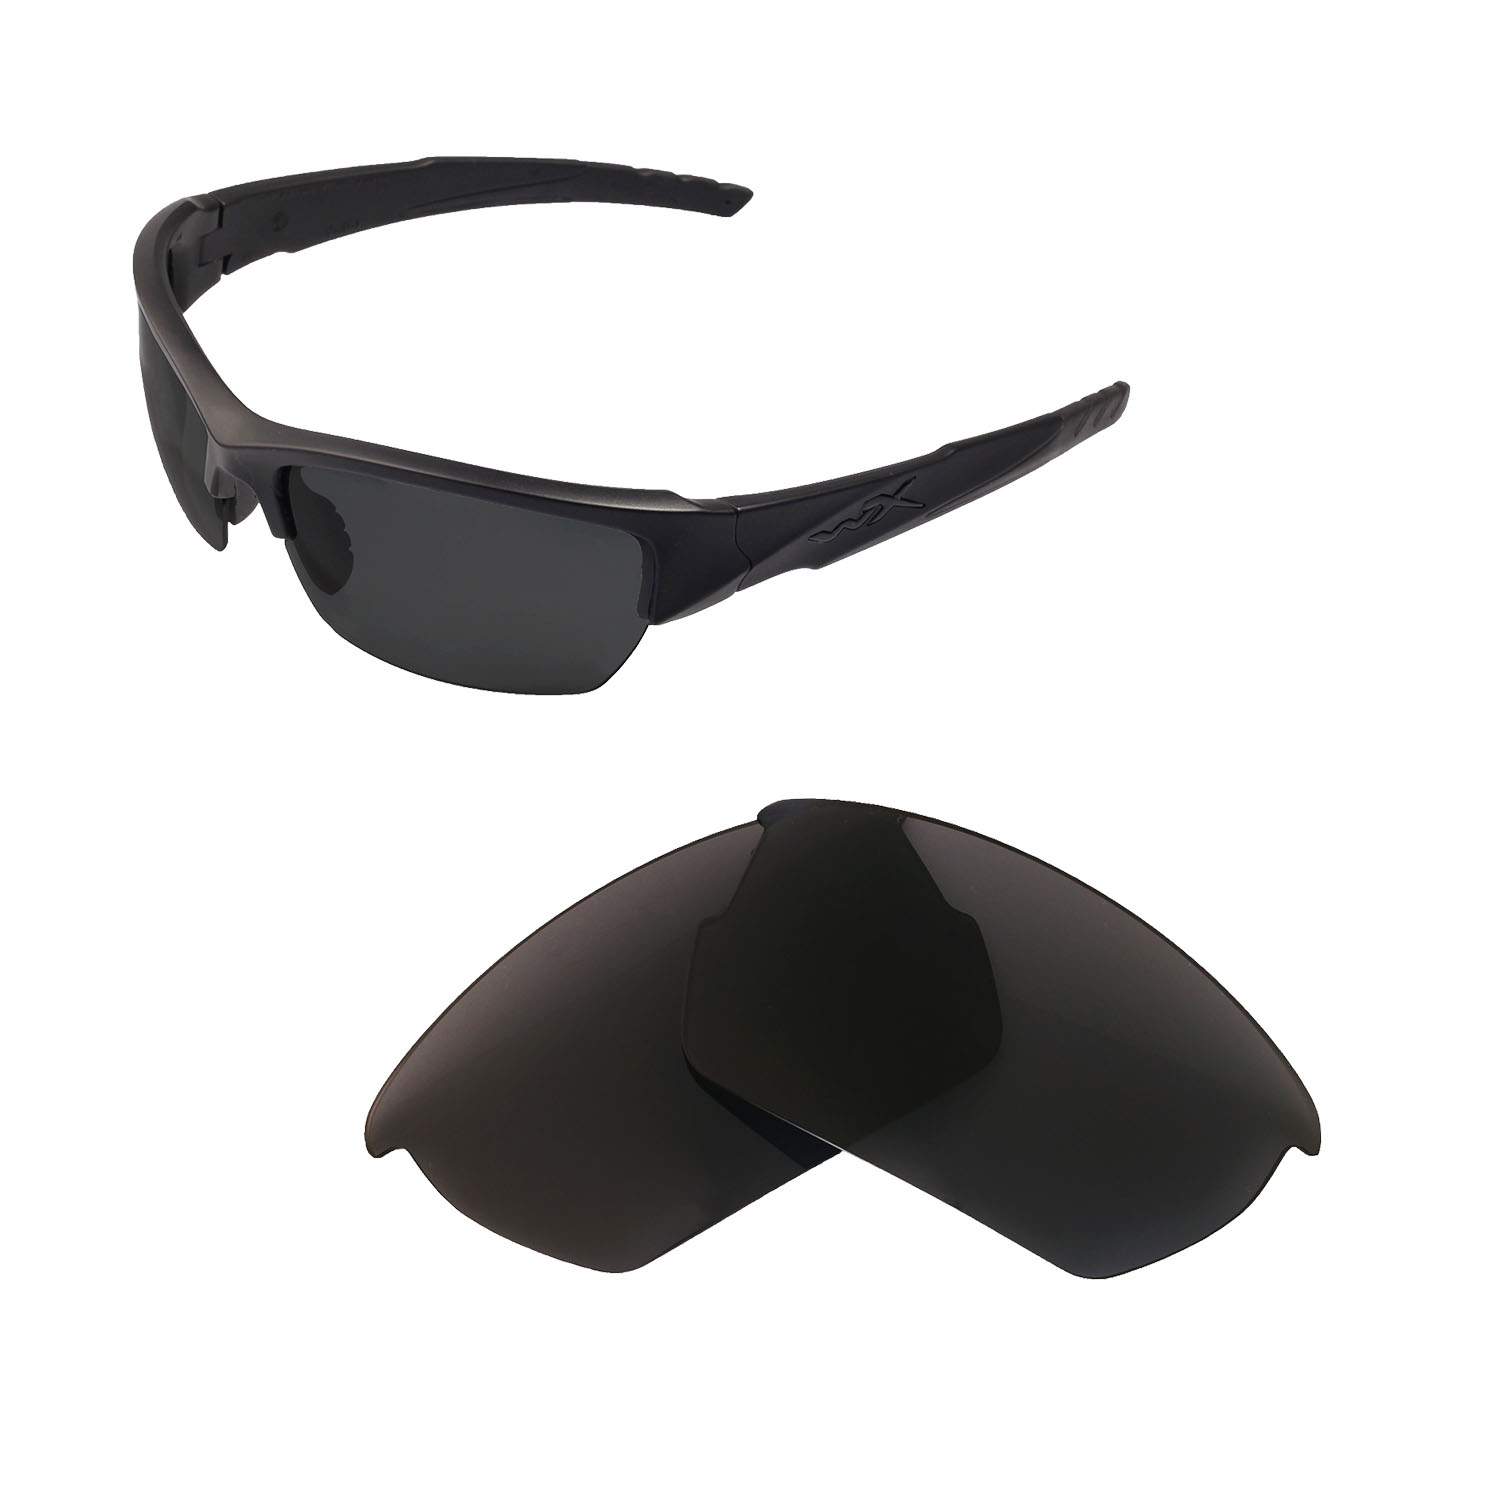 972c0d300d Details about Walleva Non-Polarized Black Replacement Lenses For Wiley X  Valor Sunglasses